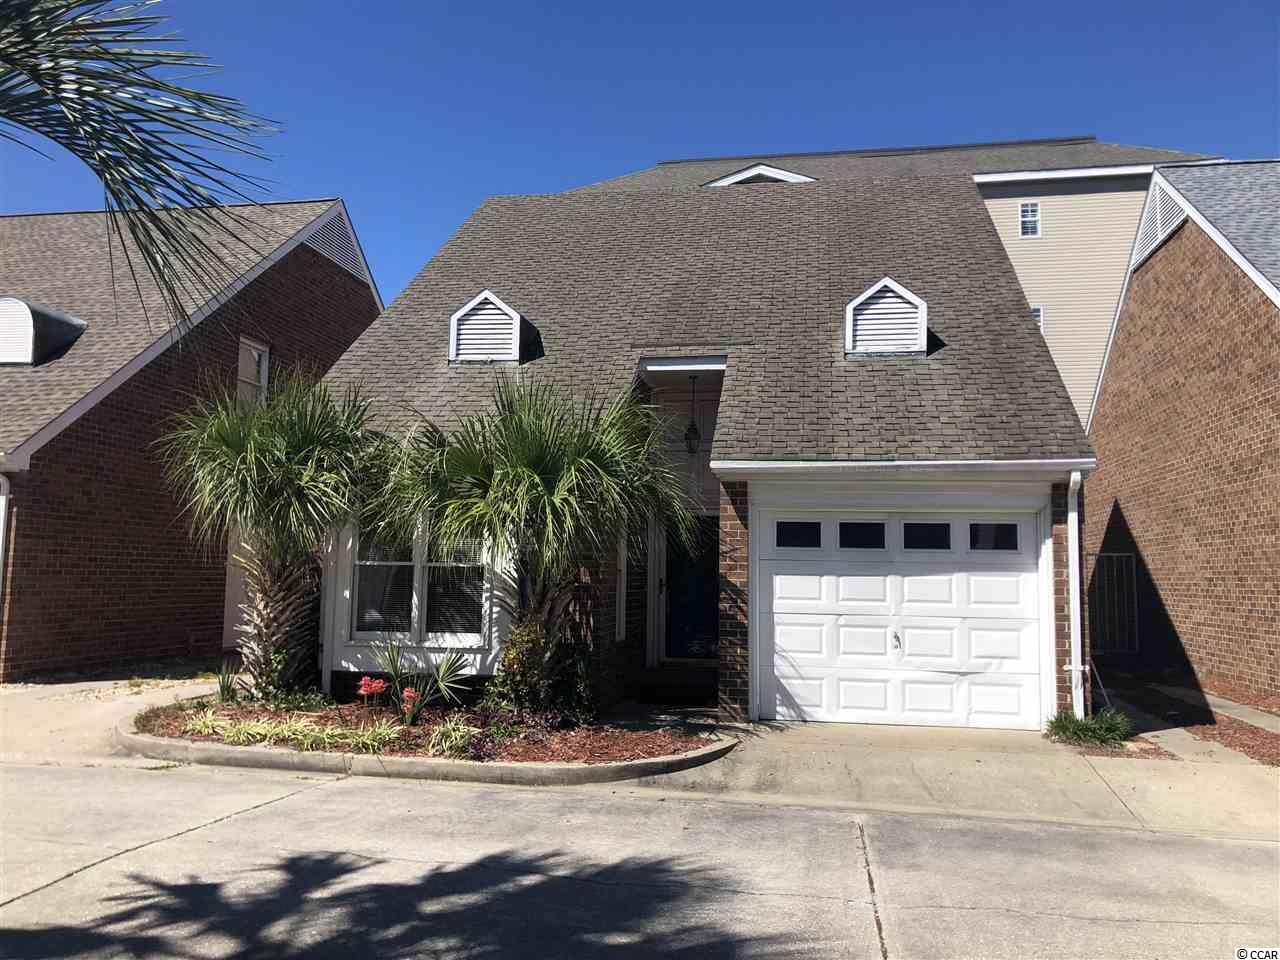 DIAMOND IN THE ROUGH ONLY 2 BLOCKS TO THE BEACH! This 3BR/2BA all brick home is in Courtyard Villas By The Sea, a quaint community with only 10 unique homes. This Home has lots of potential and features a fireplace in the family room and also in the 2nd floor master bedroom. 2 bedrooms on 1st floor and 1 full bath. Good sized Dining area in Kitchen. Large Master Bedroom (24 x 14) on 2nd floor with fireplace, masterbath has double sinks, separate shower and jacuzzi tub. Laundry room on 2nd floor with lots of storage. Private built in pool in Tropical back courtyard. Short walk to beach, OD, MainStreet, dining.. A True Shaggers delight! Property Being Sold in As Is Condition. Square footage is approximate and not guaranteed. It is the sole responsibility of the buyer and the buyer's agent to verify.